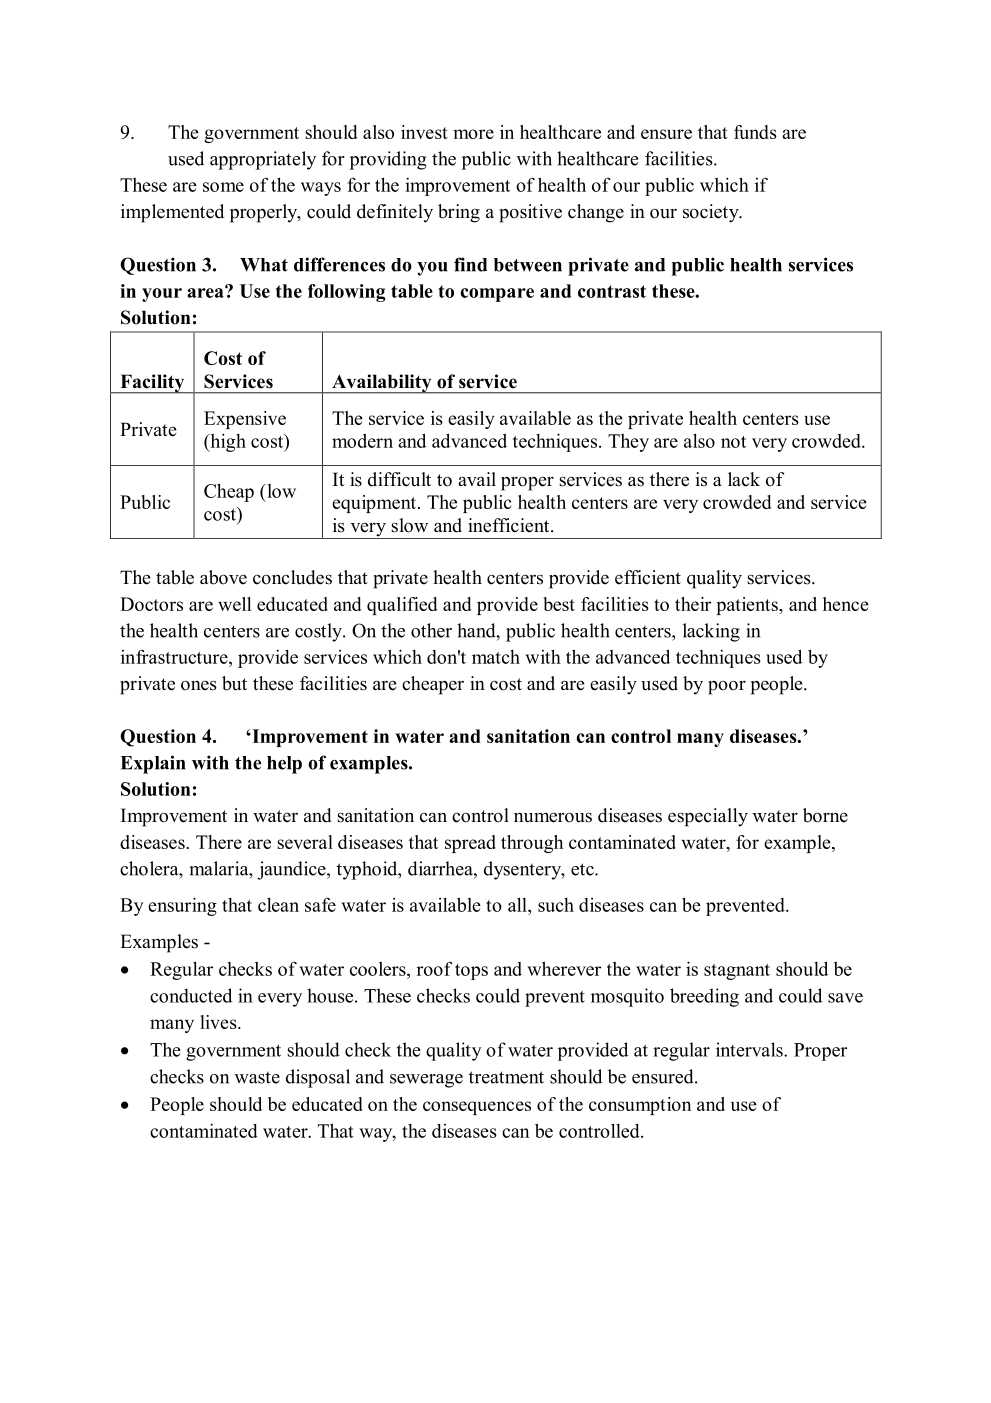 NCERT Solutions For Class 7 social science social and political life chapter 2